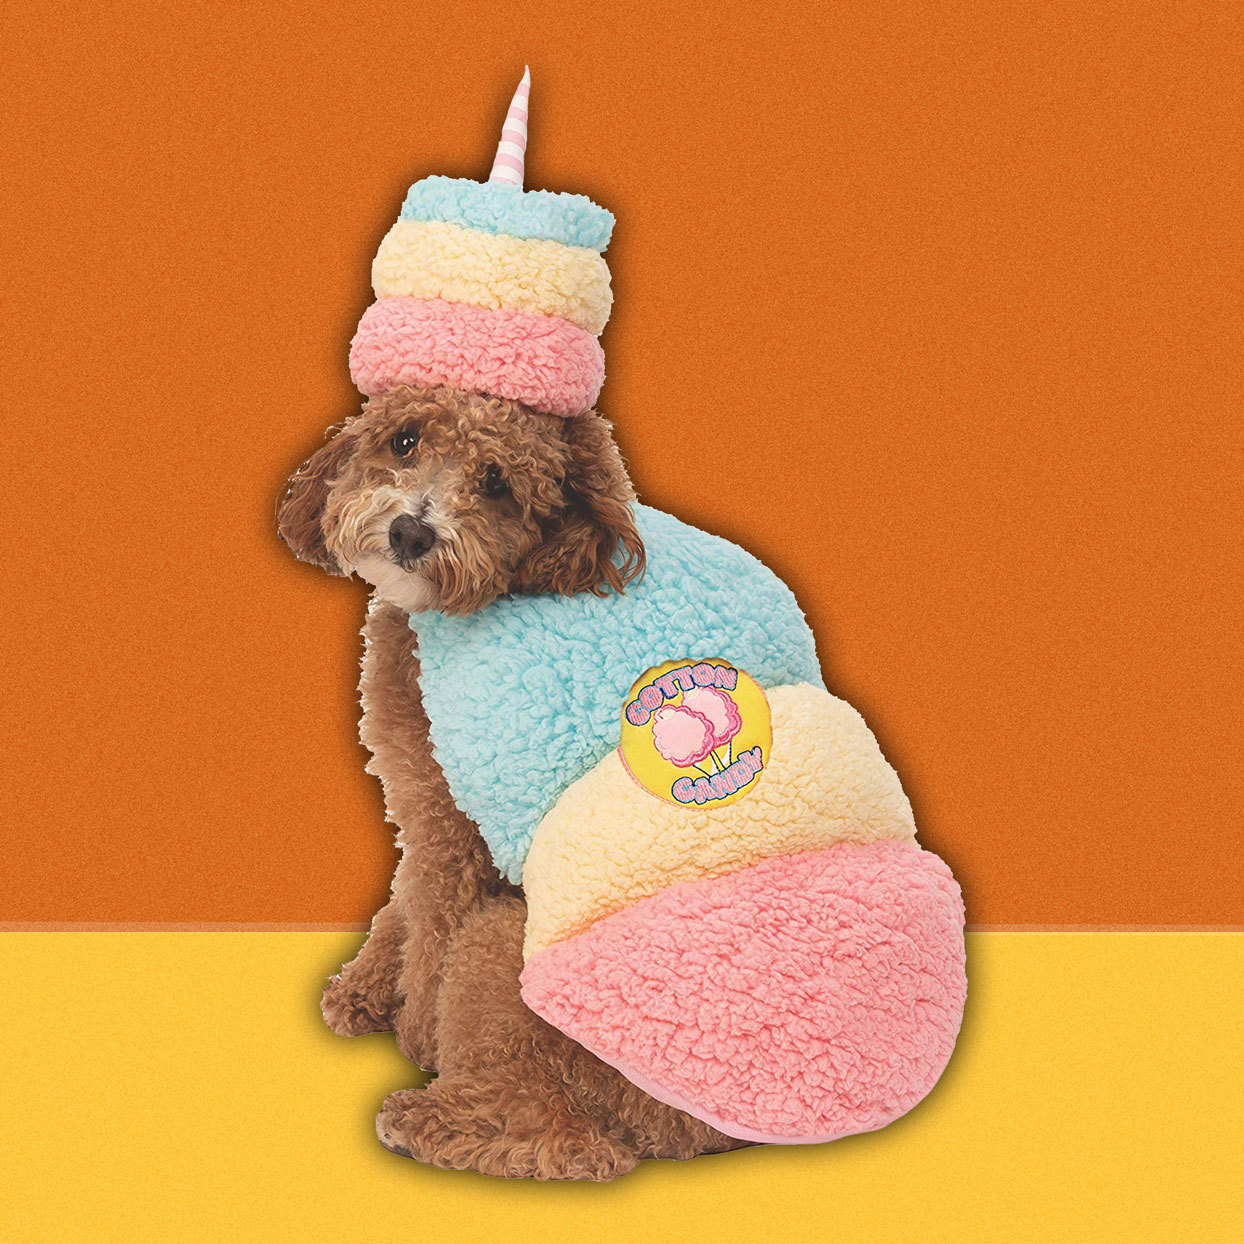 dog wearing cotton candy costume